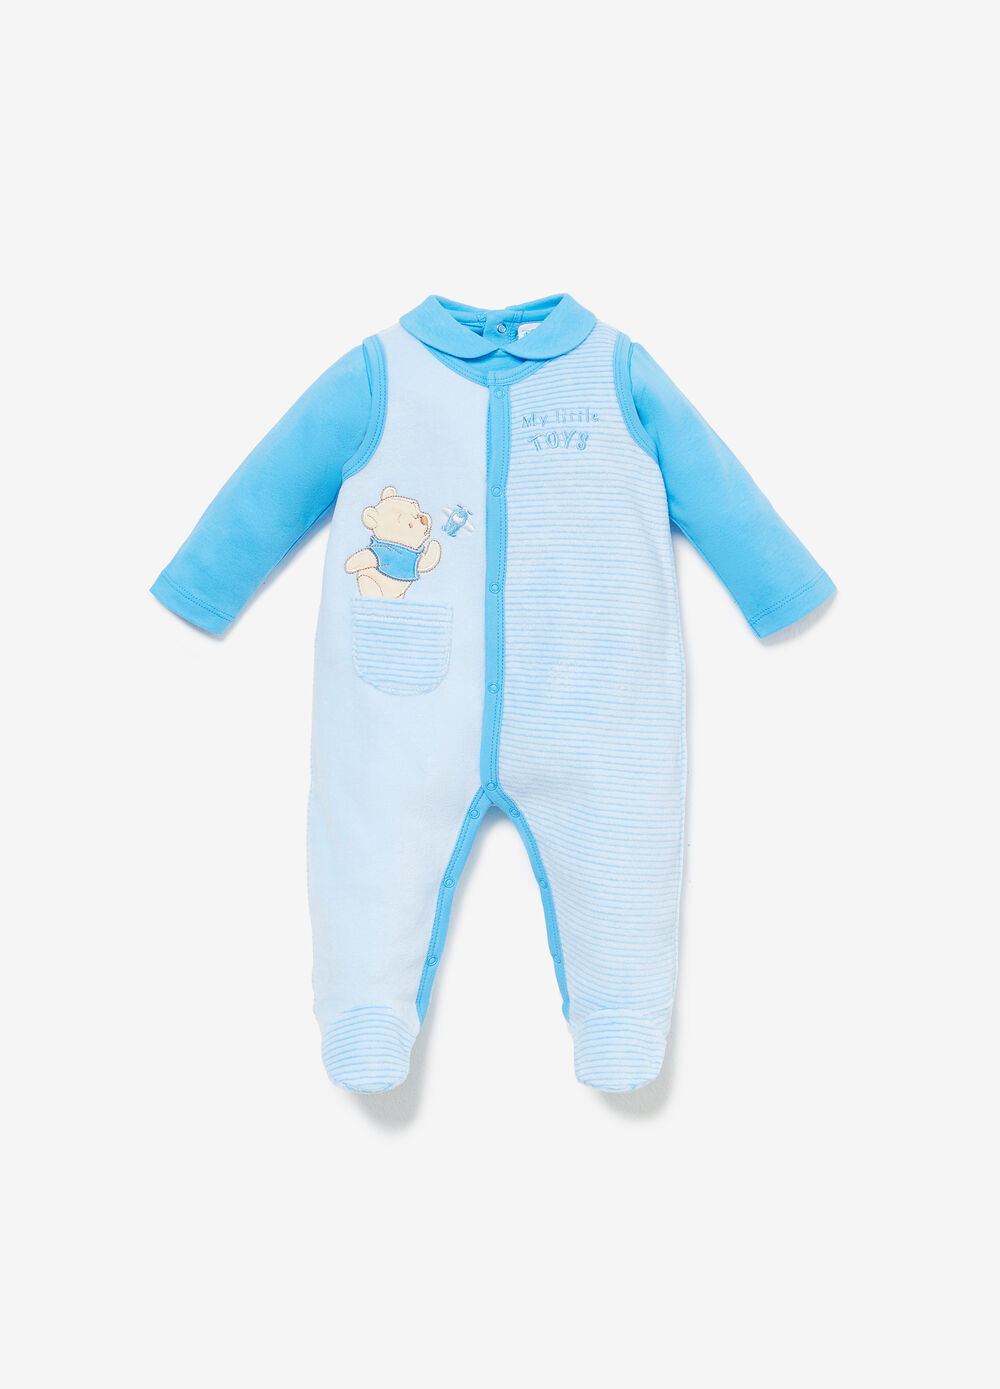 Winnie the Pooh striped outfit